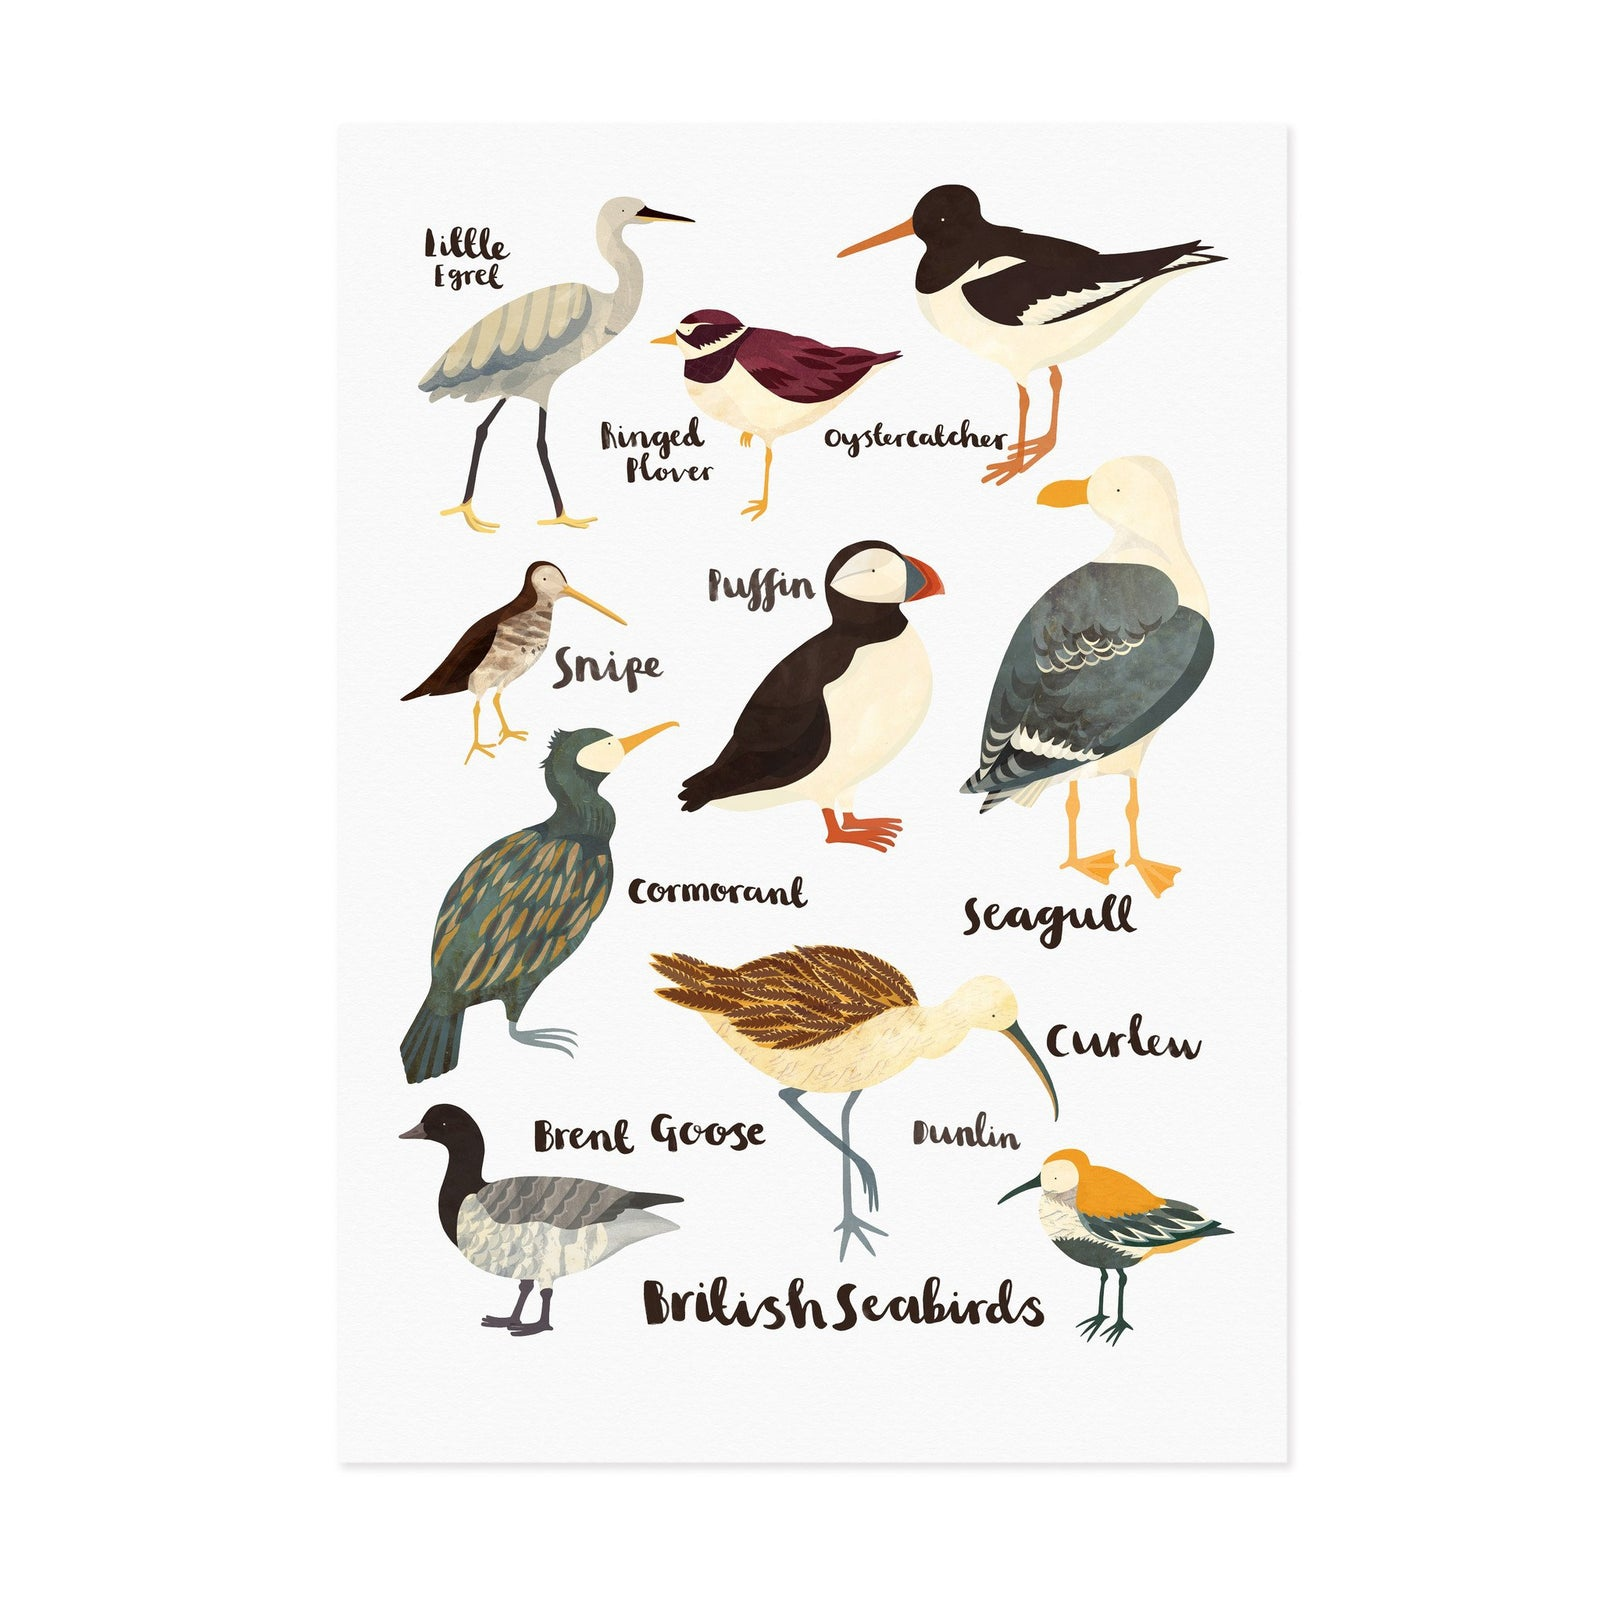 british sea birds lauren radley british sea birds